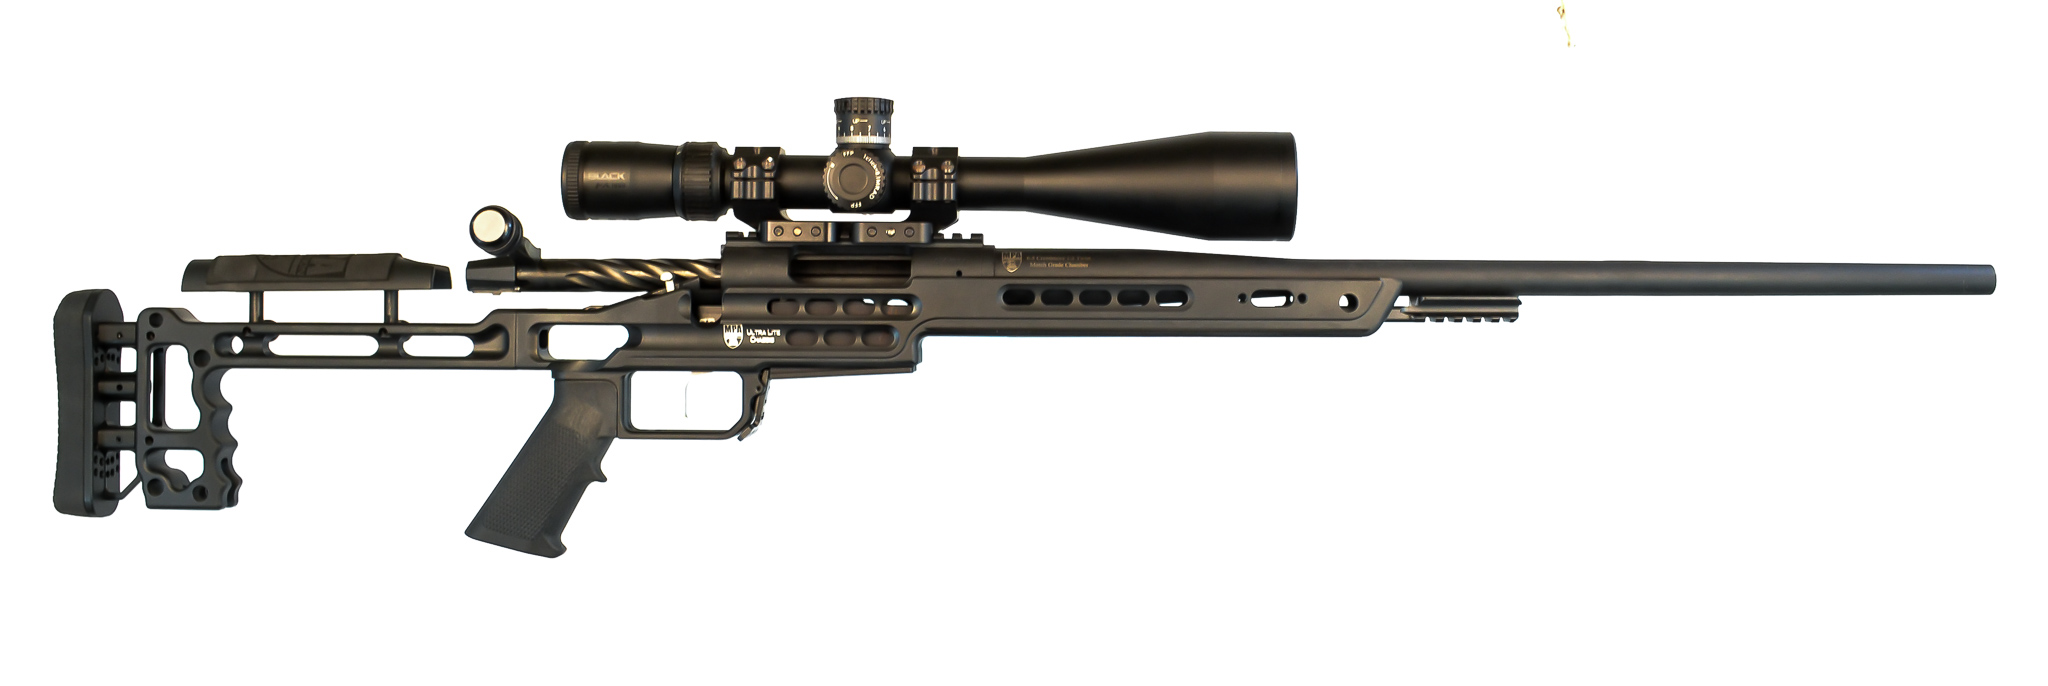 MasterPiece Arms (MPA) Adds a Stainless Barrel Rifle to its MPA BA Hunter Rifle Line